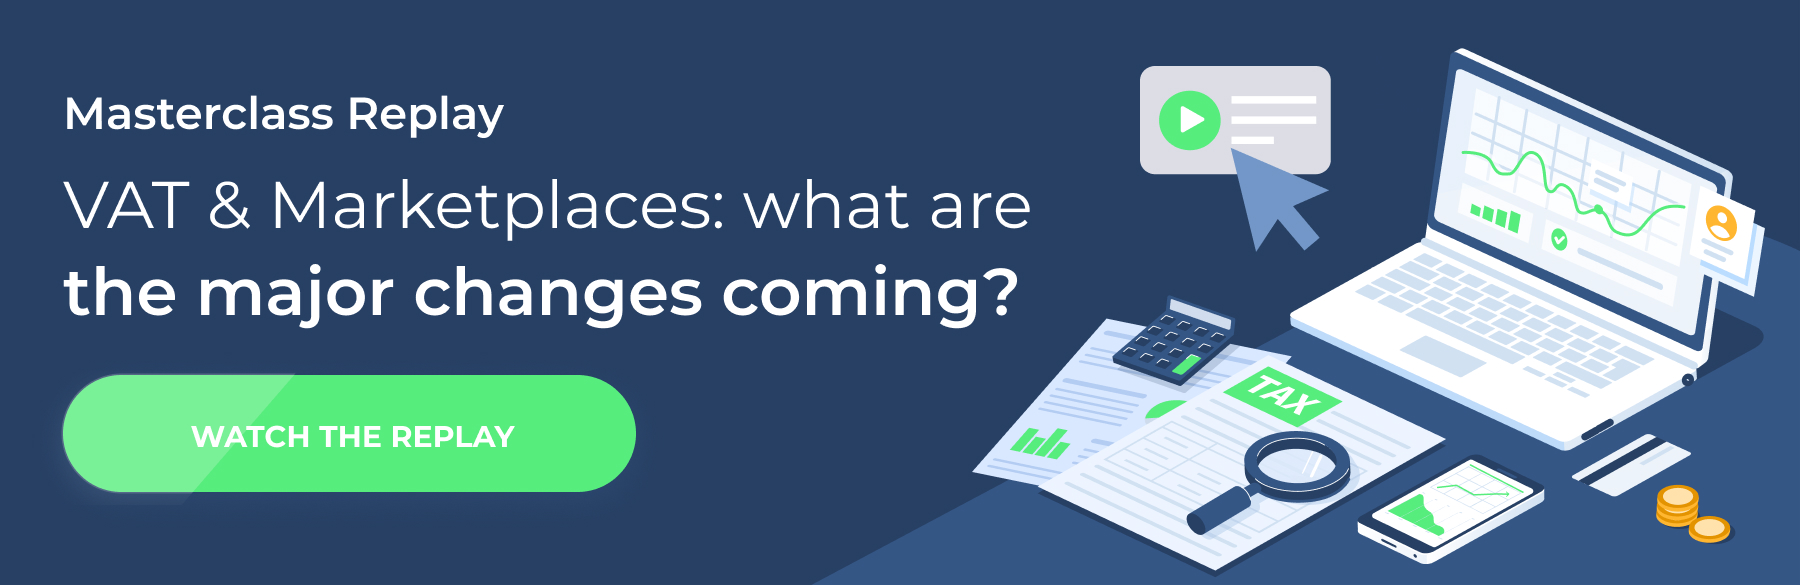 VAT & Marketplaces: what are the major changes coming?